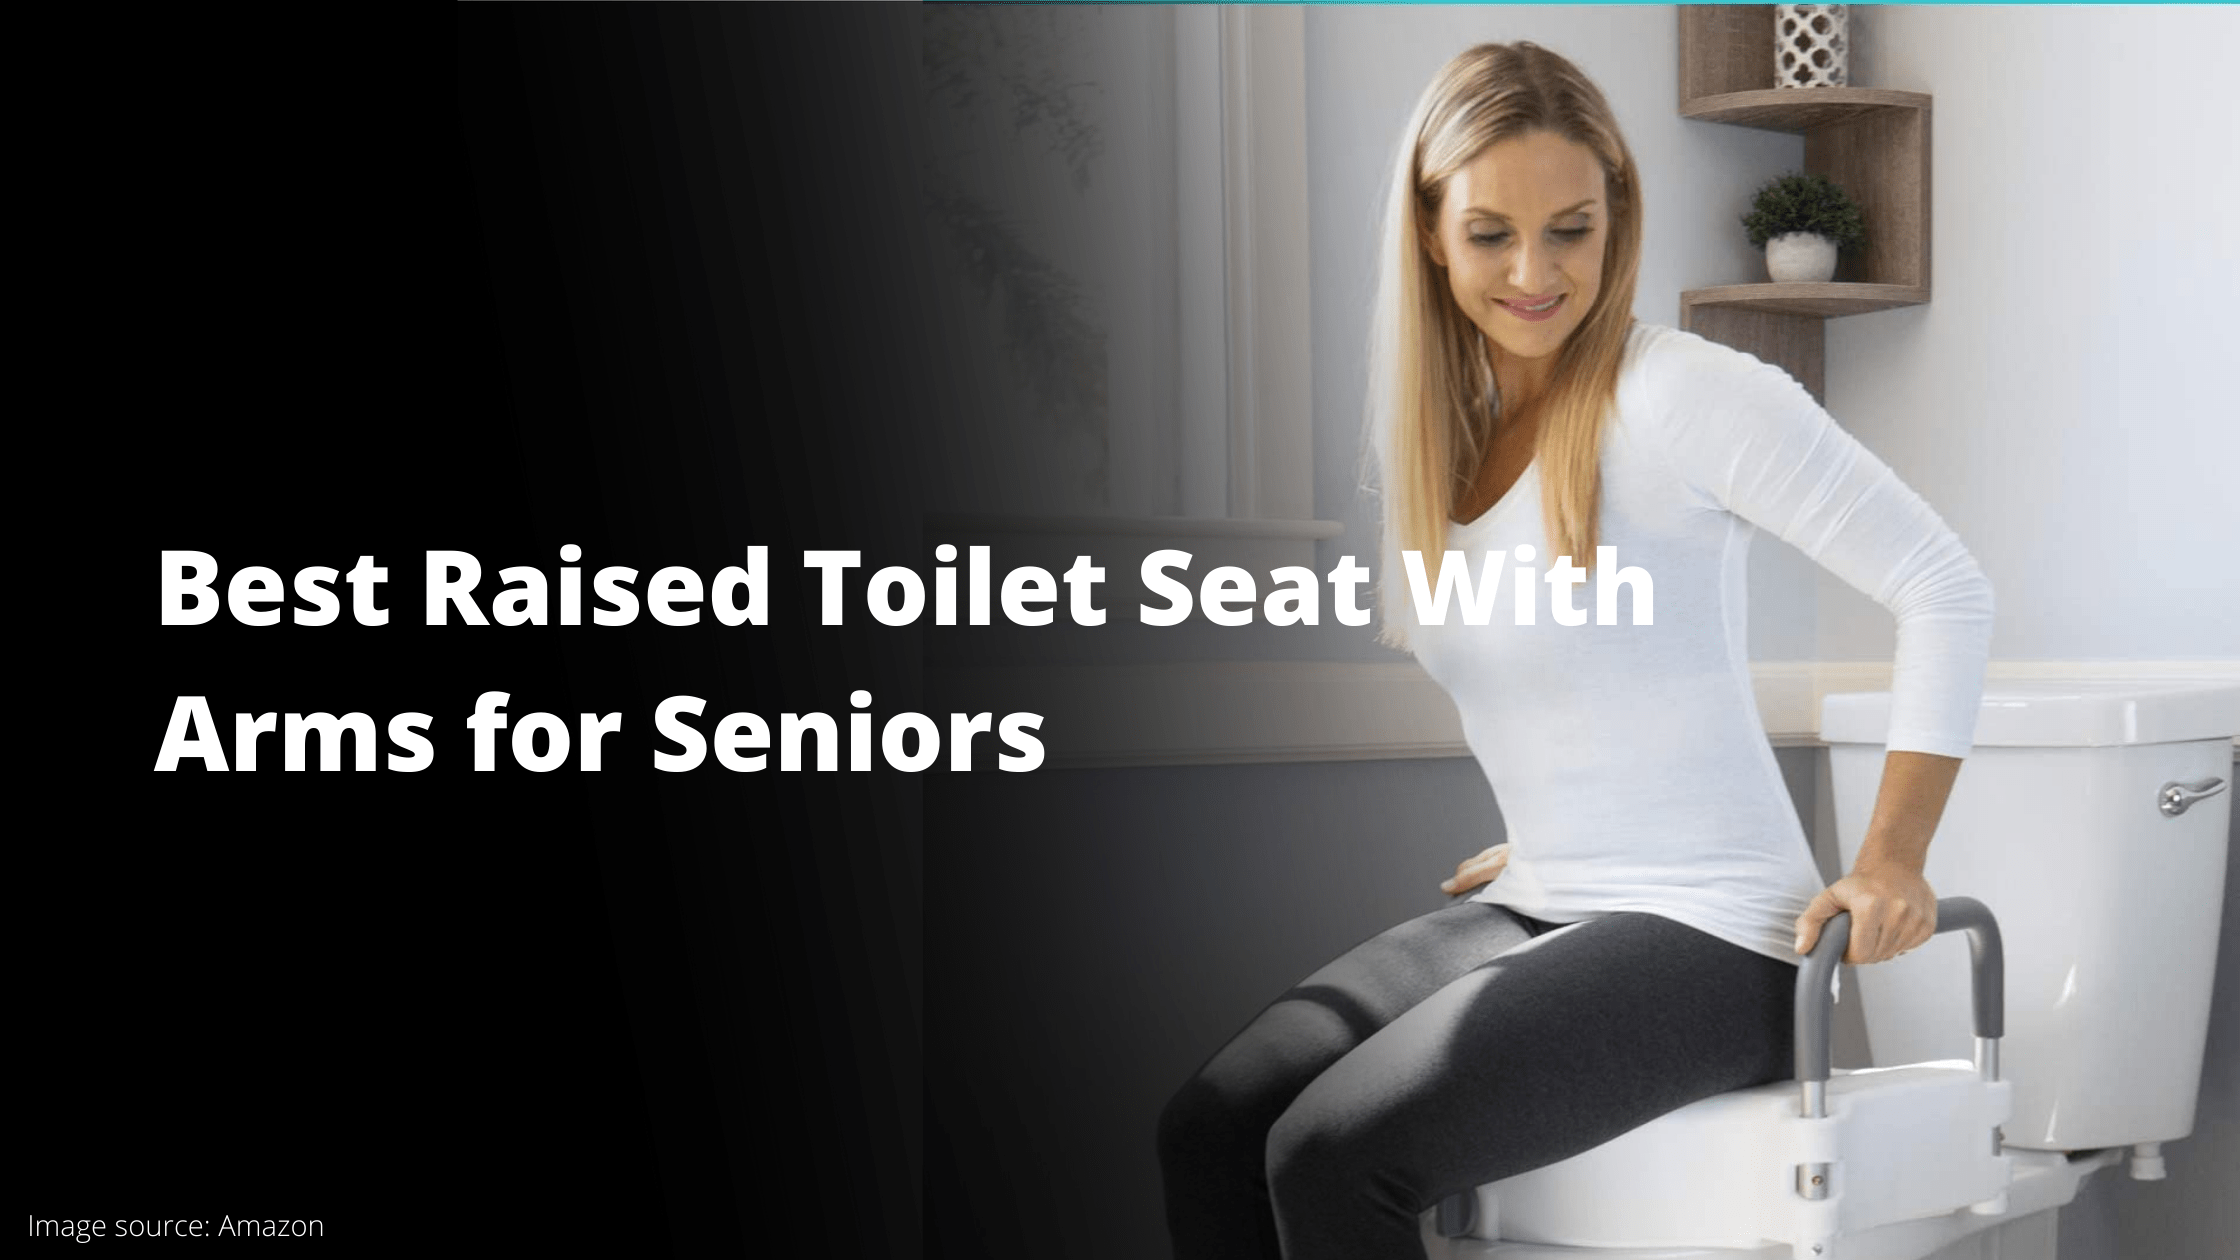 Best Raised Toilet Seat with Arms For Seniors